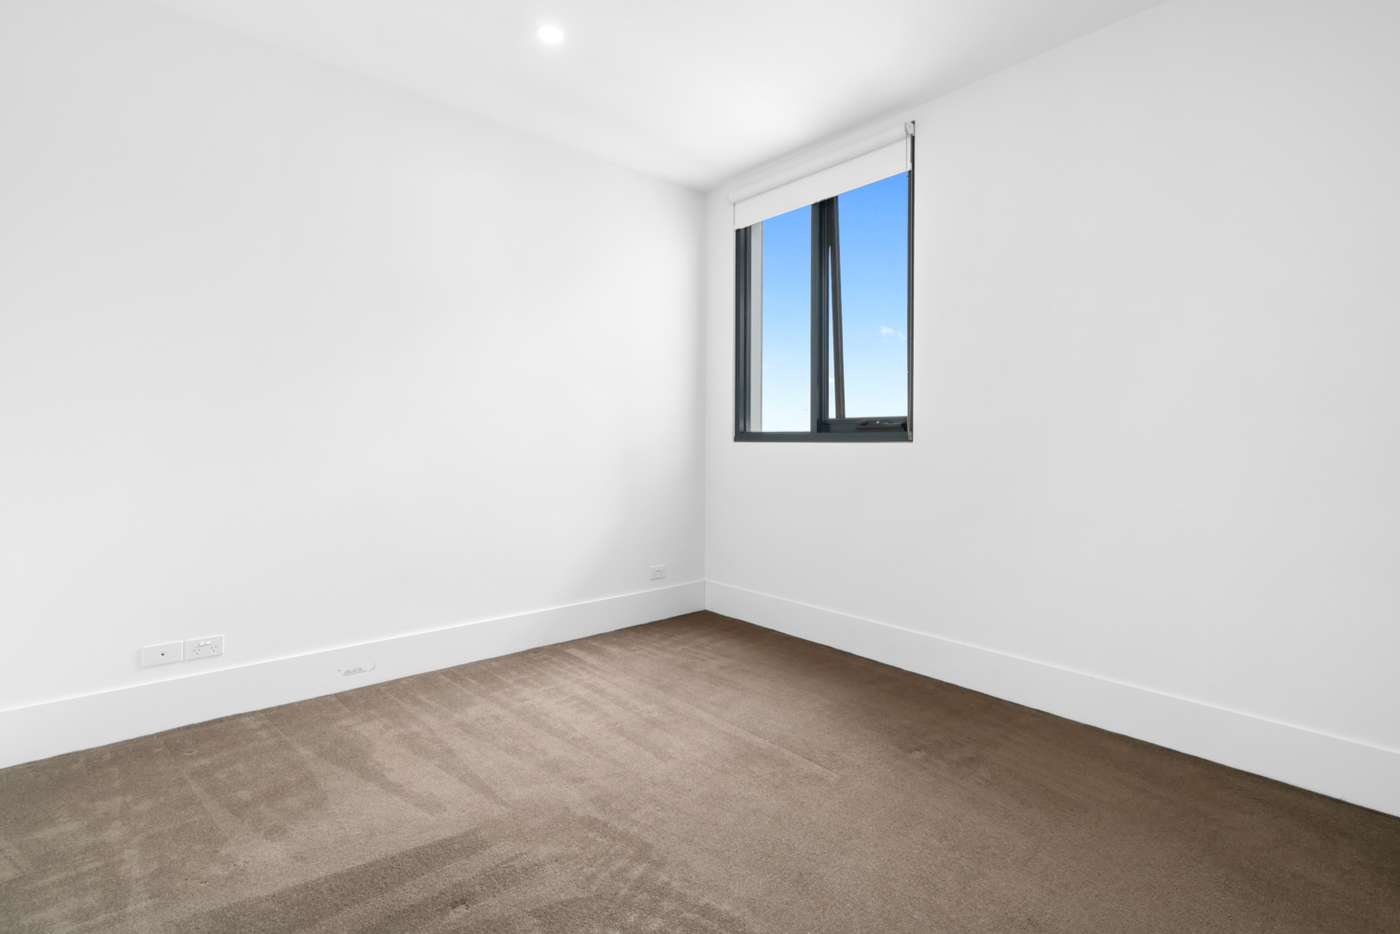 Sixth view of Homely apartment listing, 204/392-398 Victoria Street, North Melbourne VIC 3051